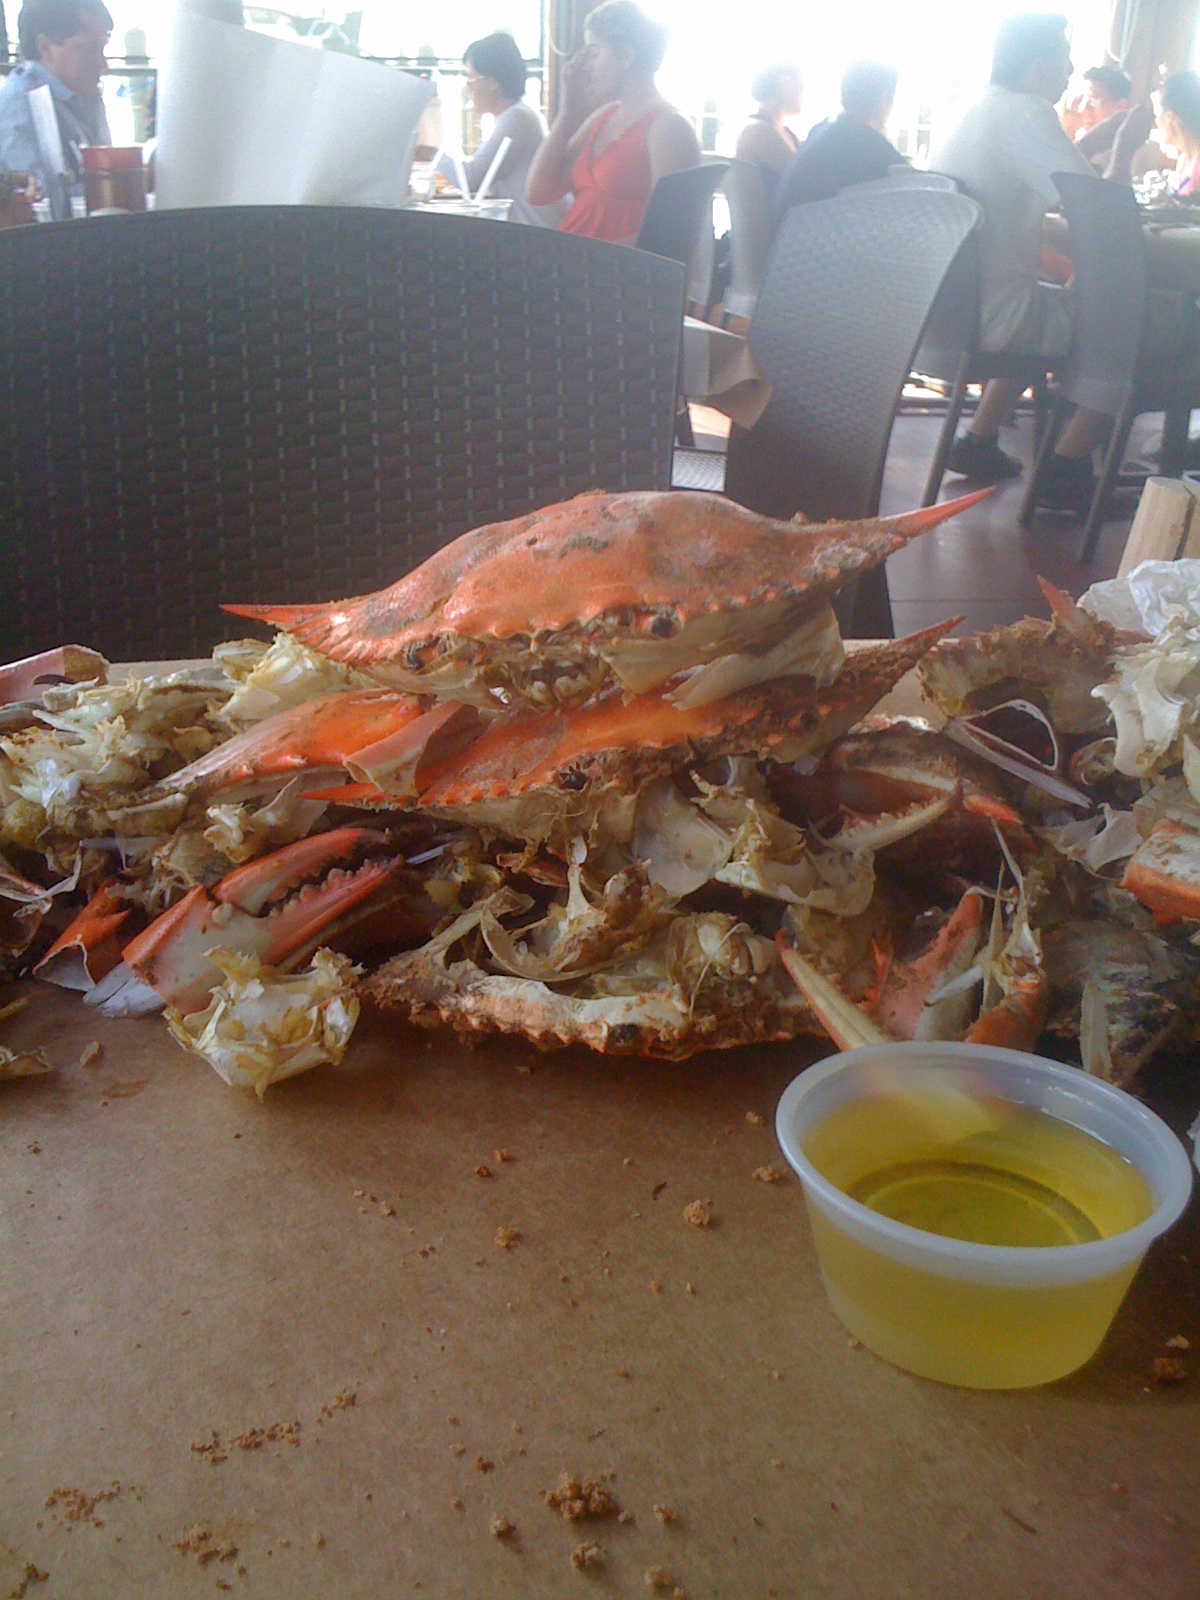 ... were excited to get out of the city and do active things like eat crabs.